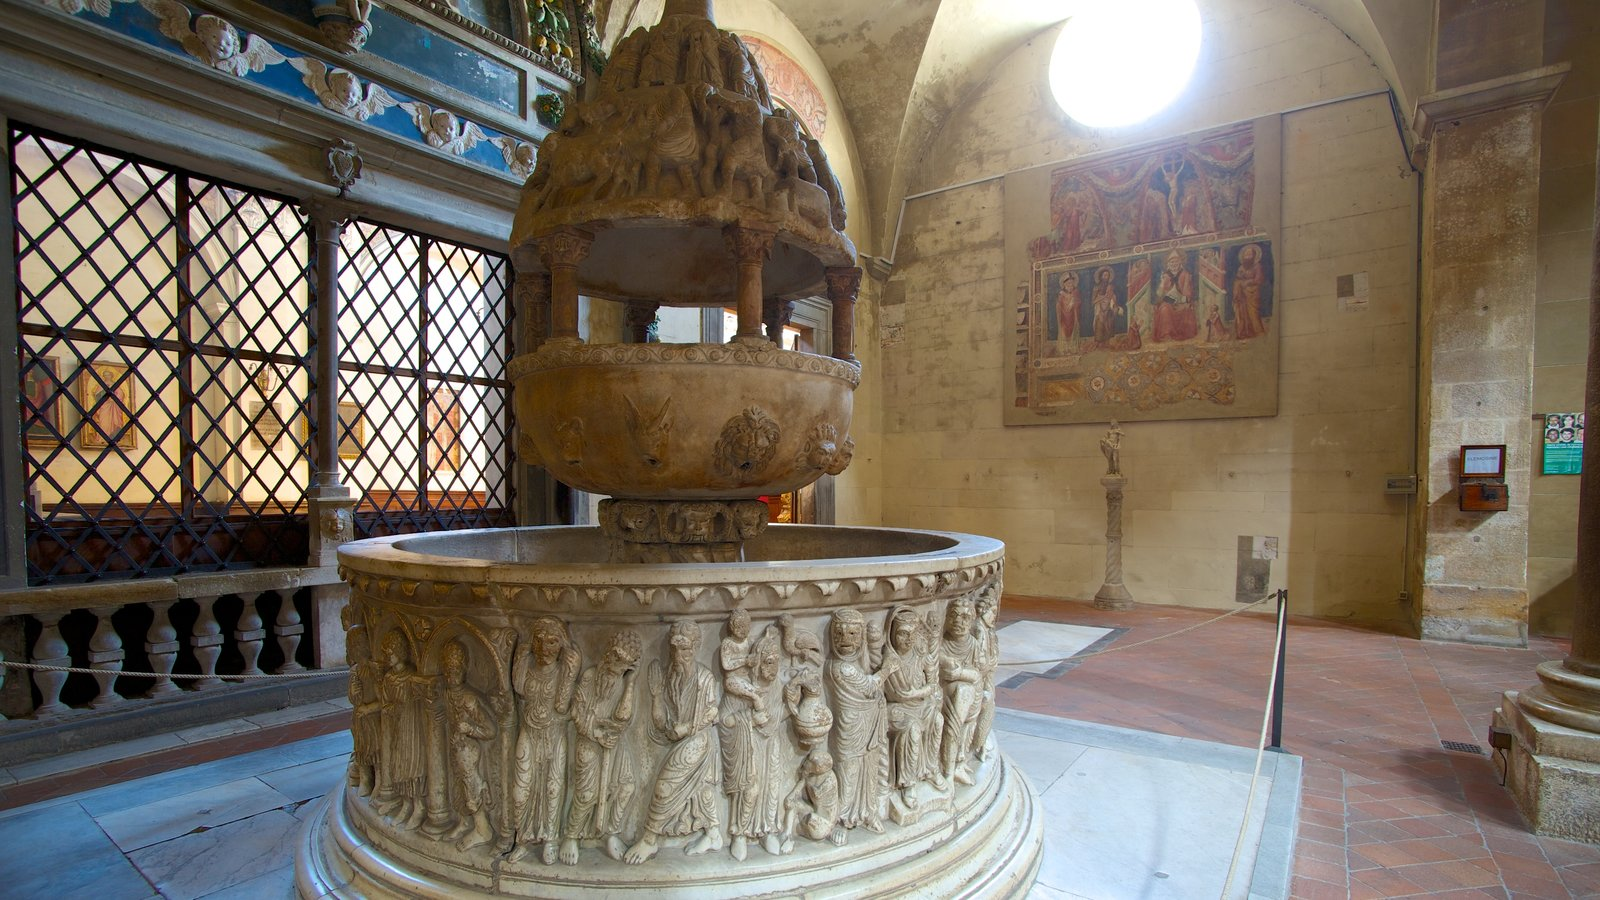 Basilica di San Frediano featuring a church or cathedral, religious elements and interior views